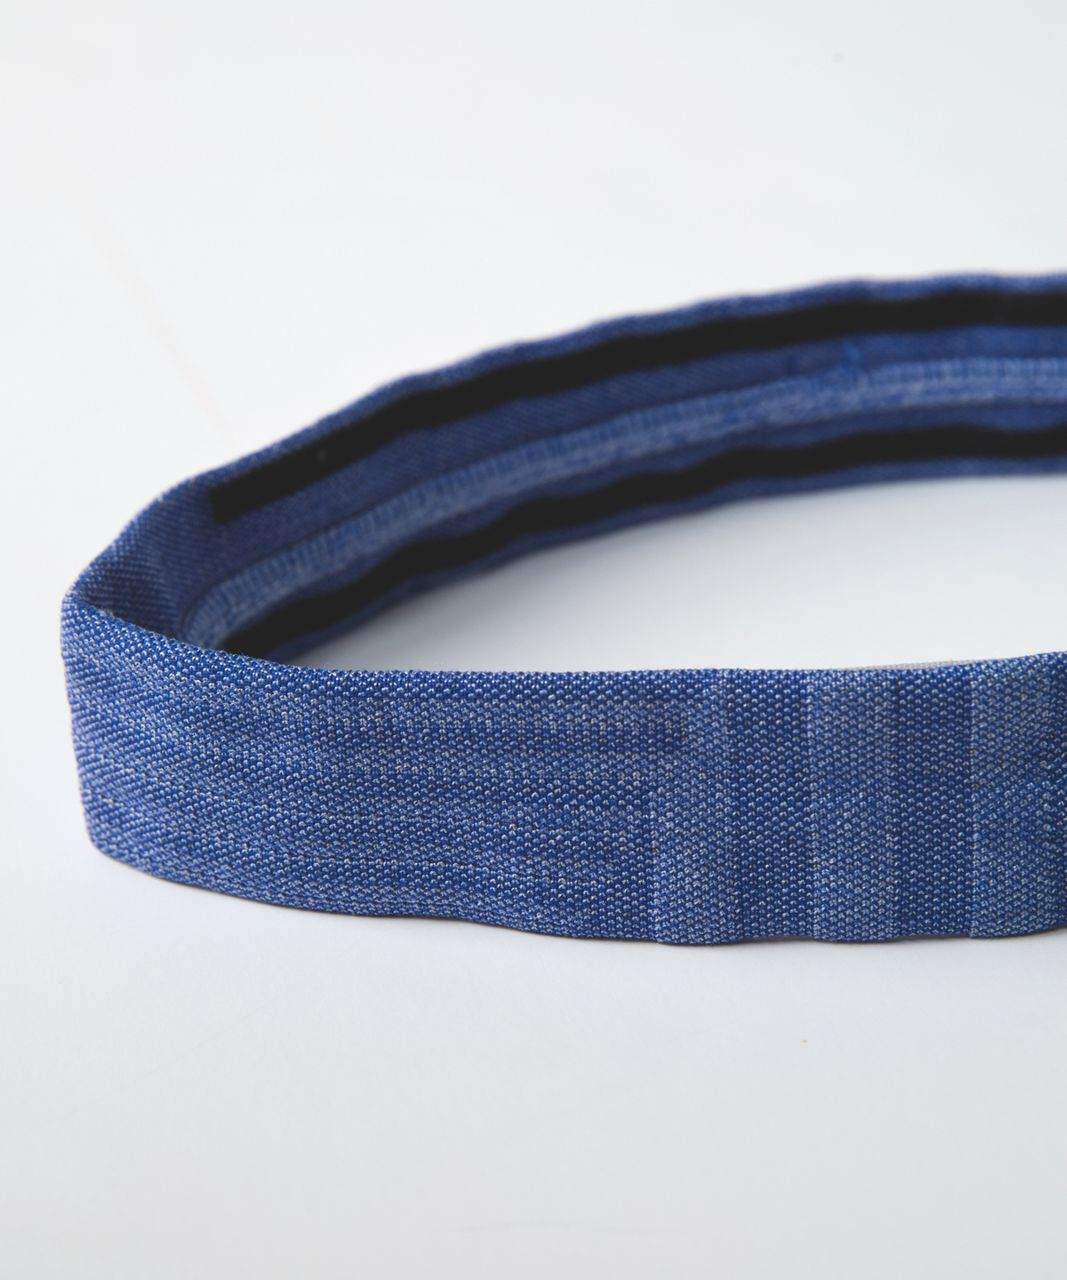 Lululemon Cardio Cross Trainer Headband - Sapphire Blue